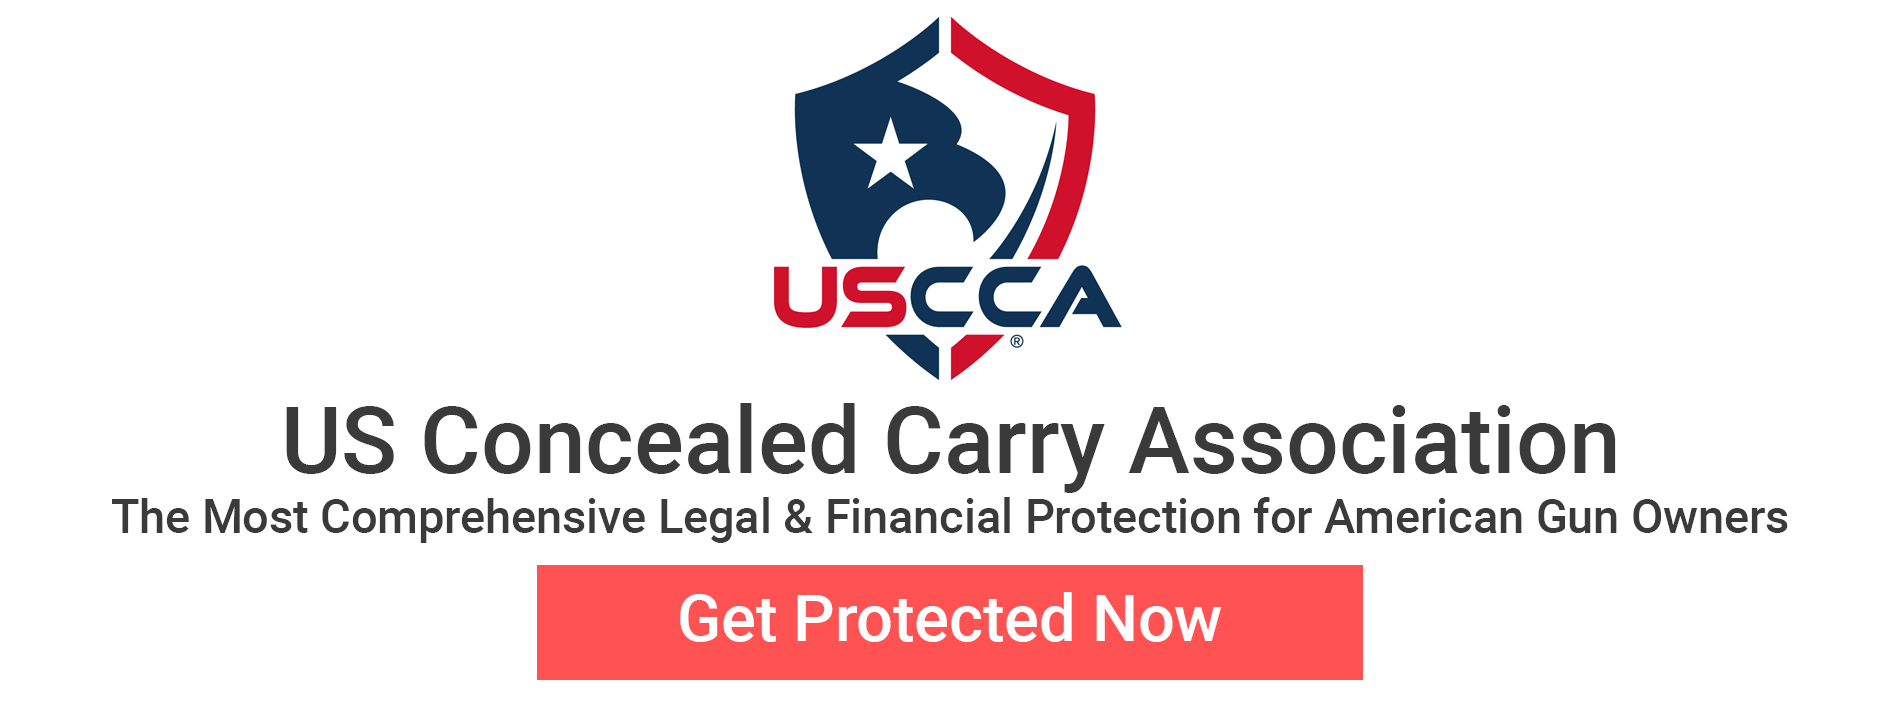 USCCA Protection